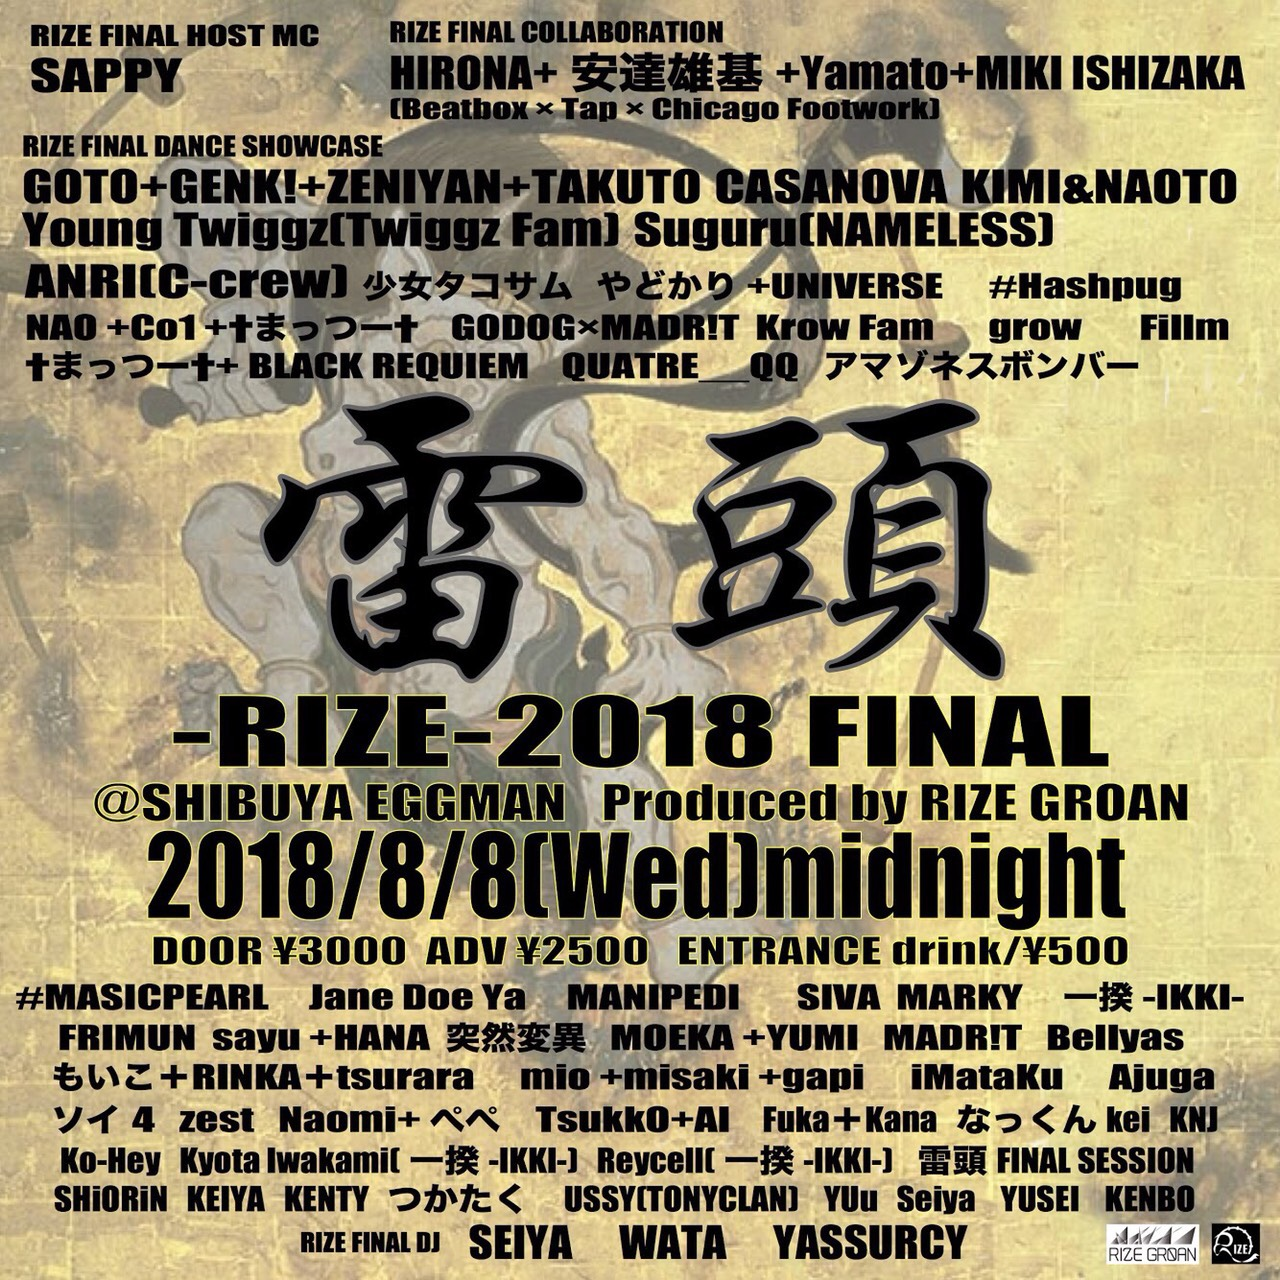 雷頭-RIZE-2018 FINAL Produced by RIZE GROAN